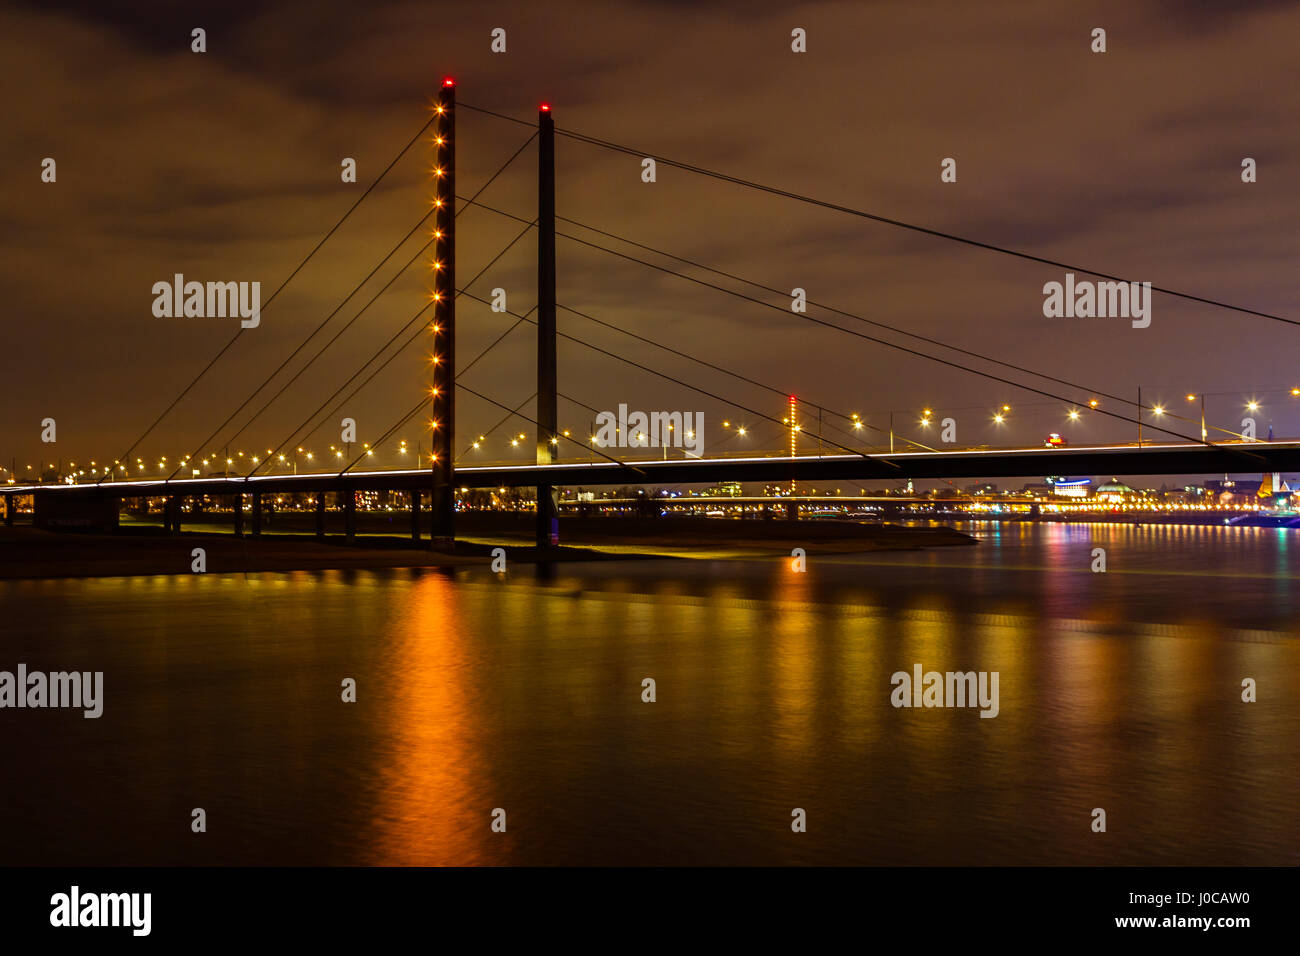 Rhine bridge at night in Dusseldorf, Germany Stock Photo